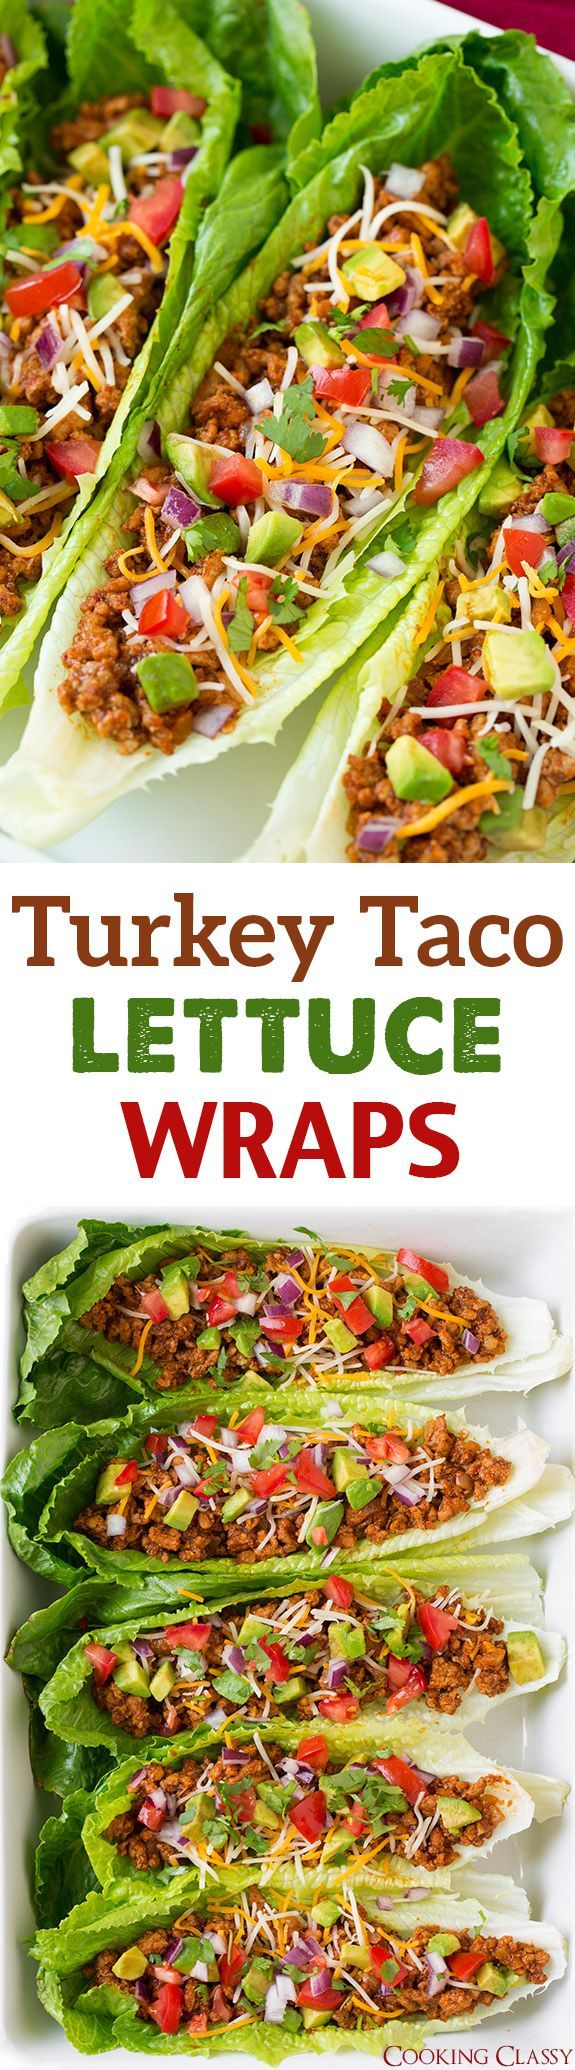 Turkey Taco Lettuce Wraps – these are incredibly delicious!! We liked them just as